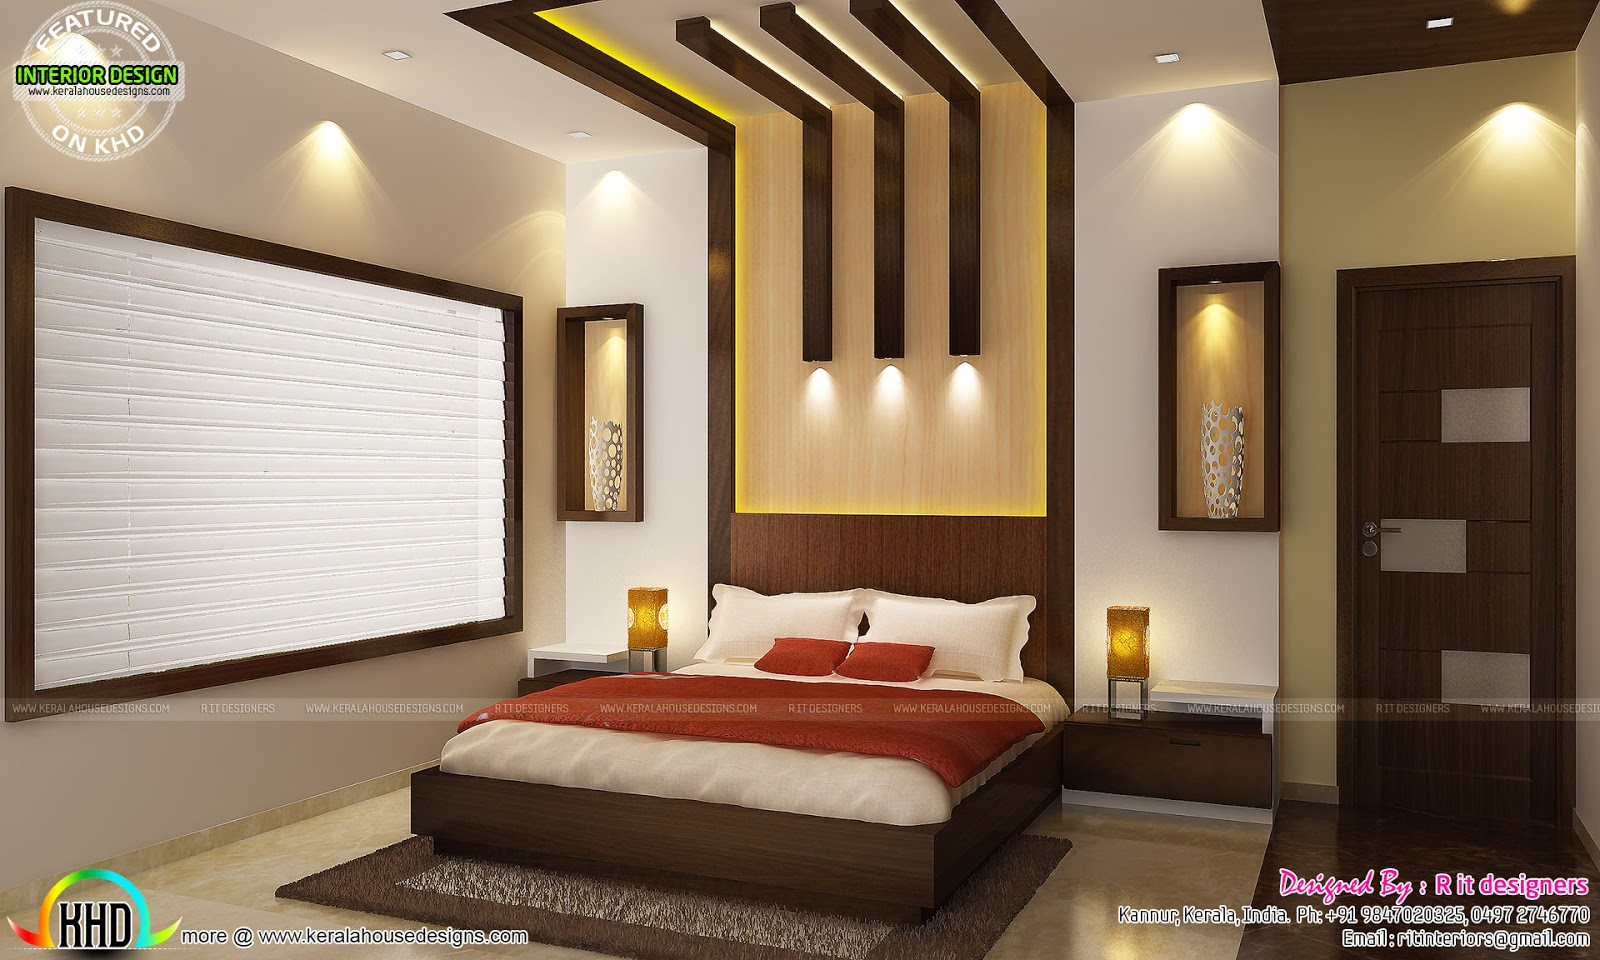 Kitchen living bedroom dining interior decor kerala for Interior decoration for bedroom pictures